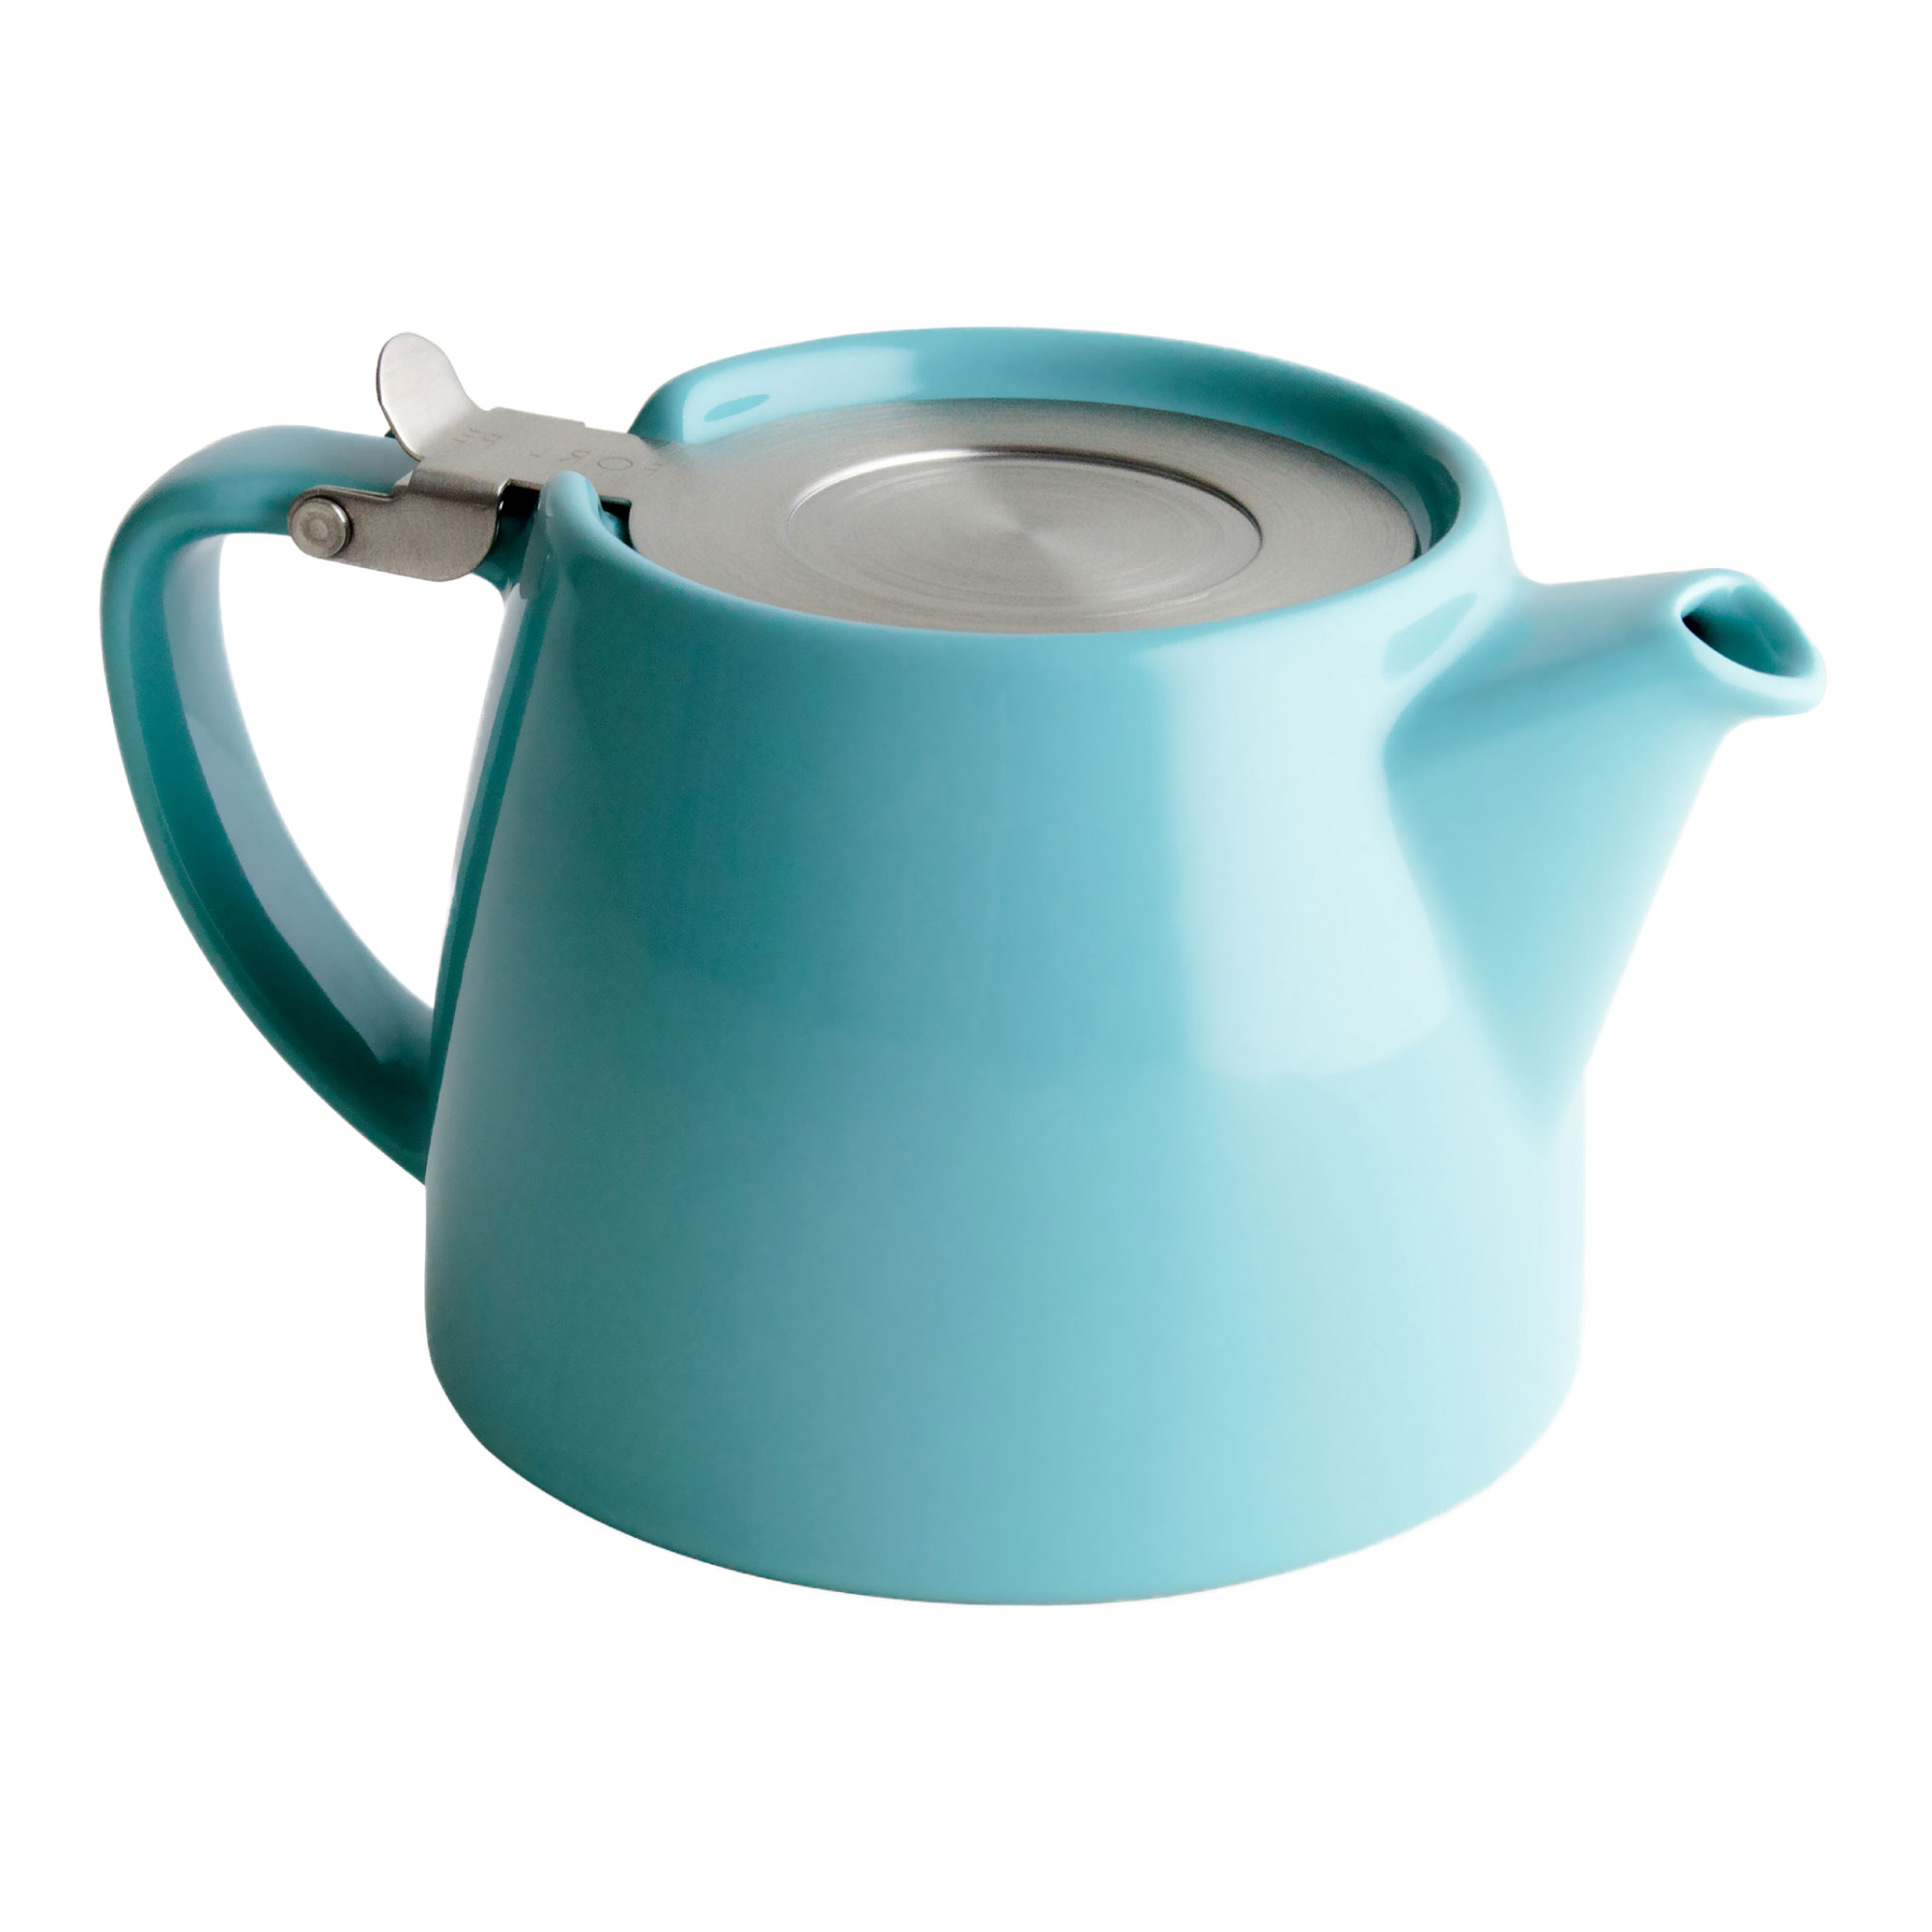 Turquoise Tea Pot for Infusing Loose Leaf Tea